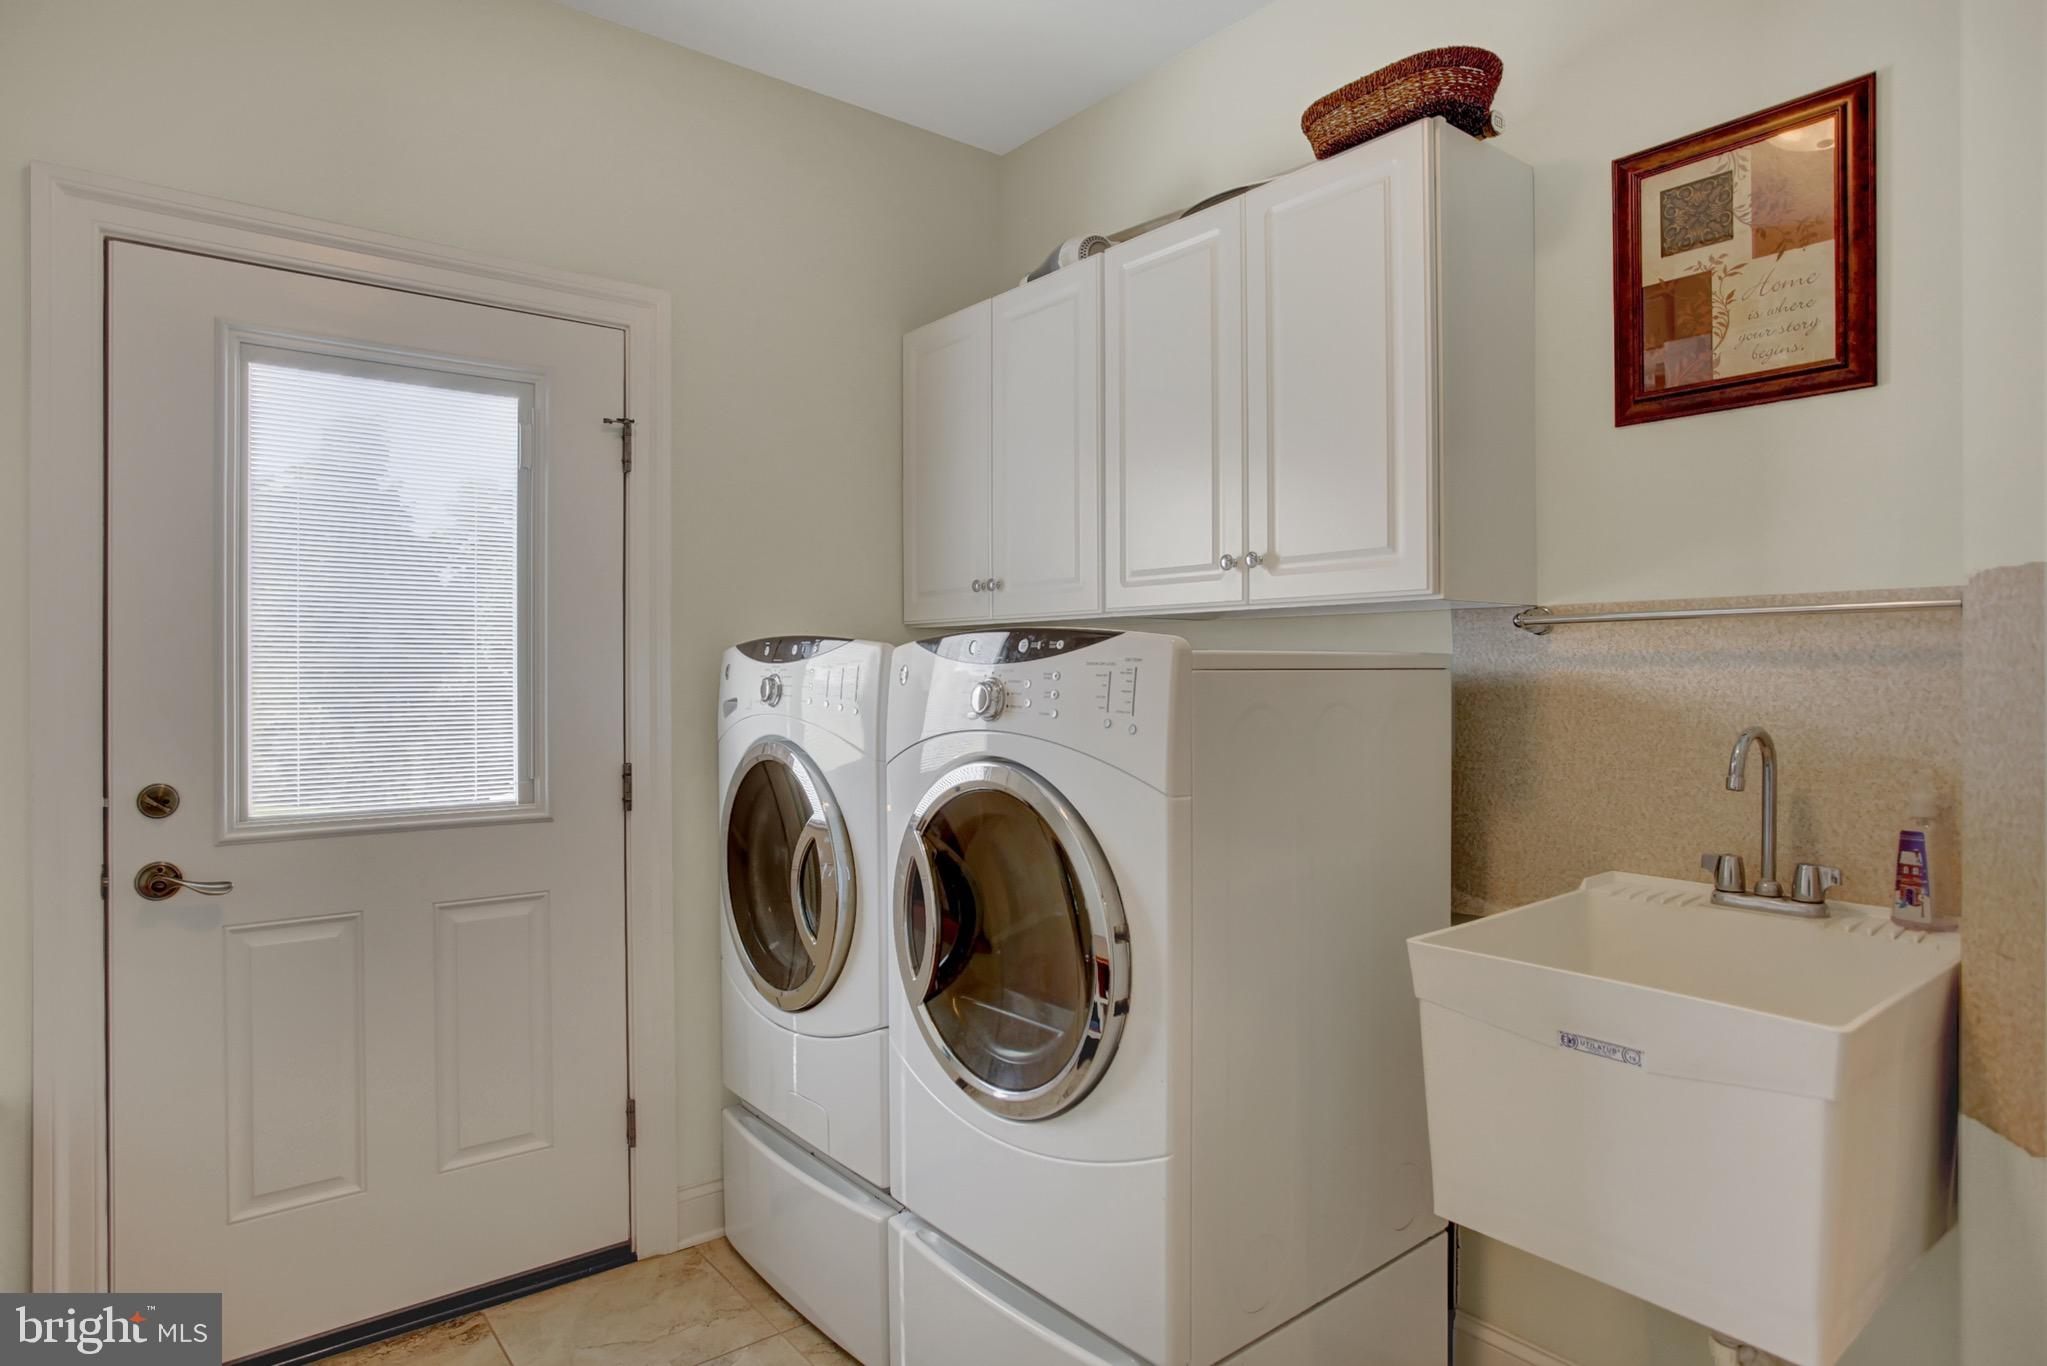 Mudroom with utility sink and cabinets